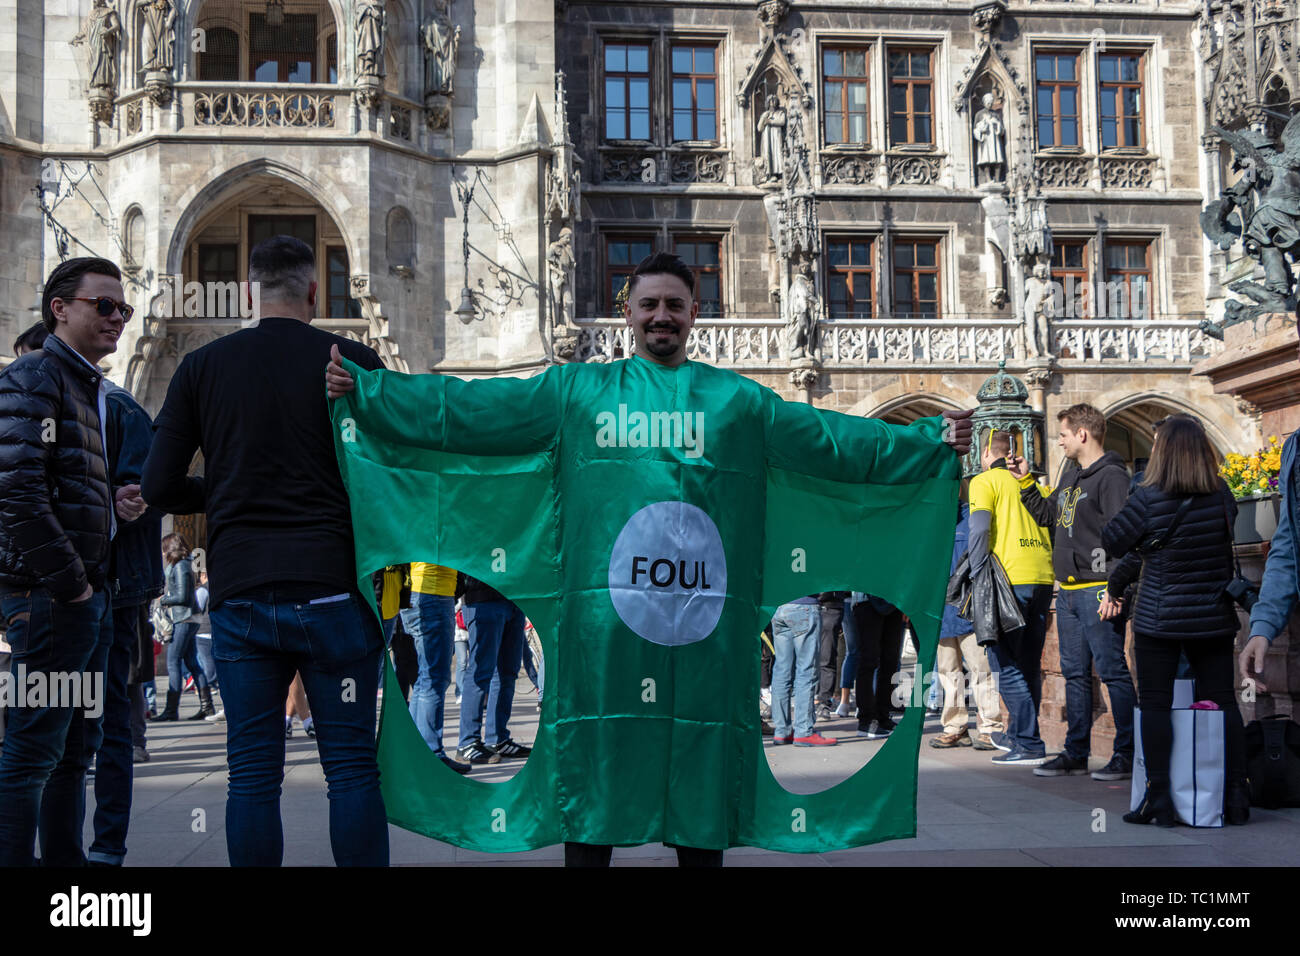 STACHUS, MUENCHEN, APRIL 6, 2019: bvb fans on the way to a public viewing location for the soccer game fc bayern munich vs bvb Stock Photo